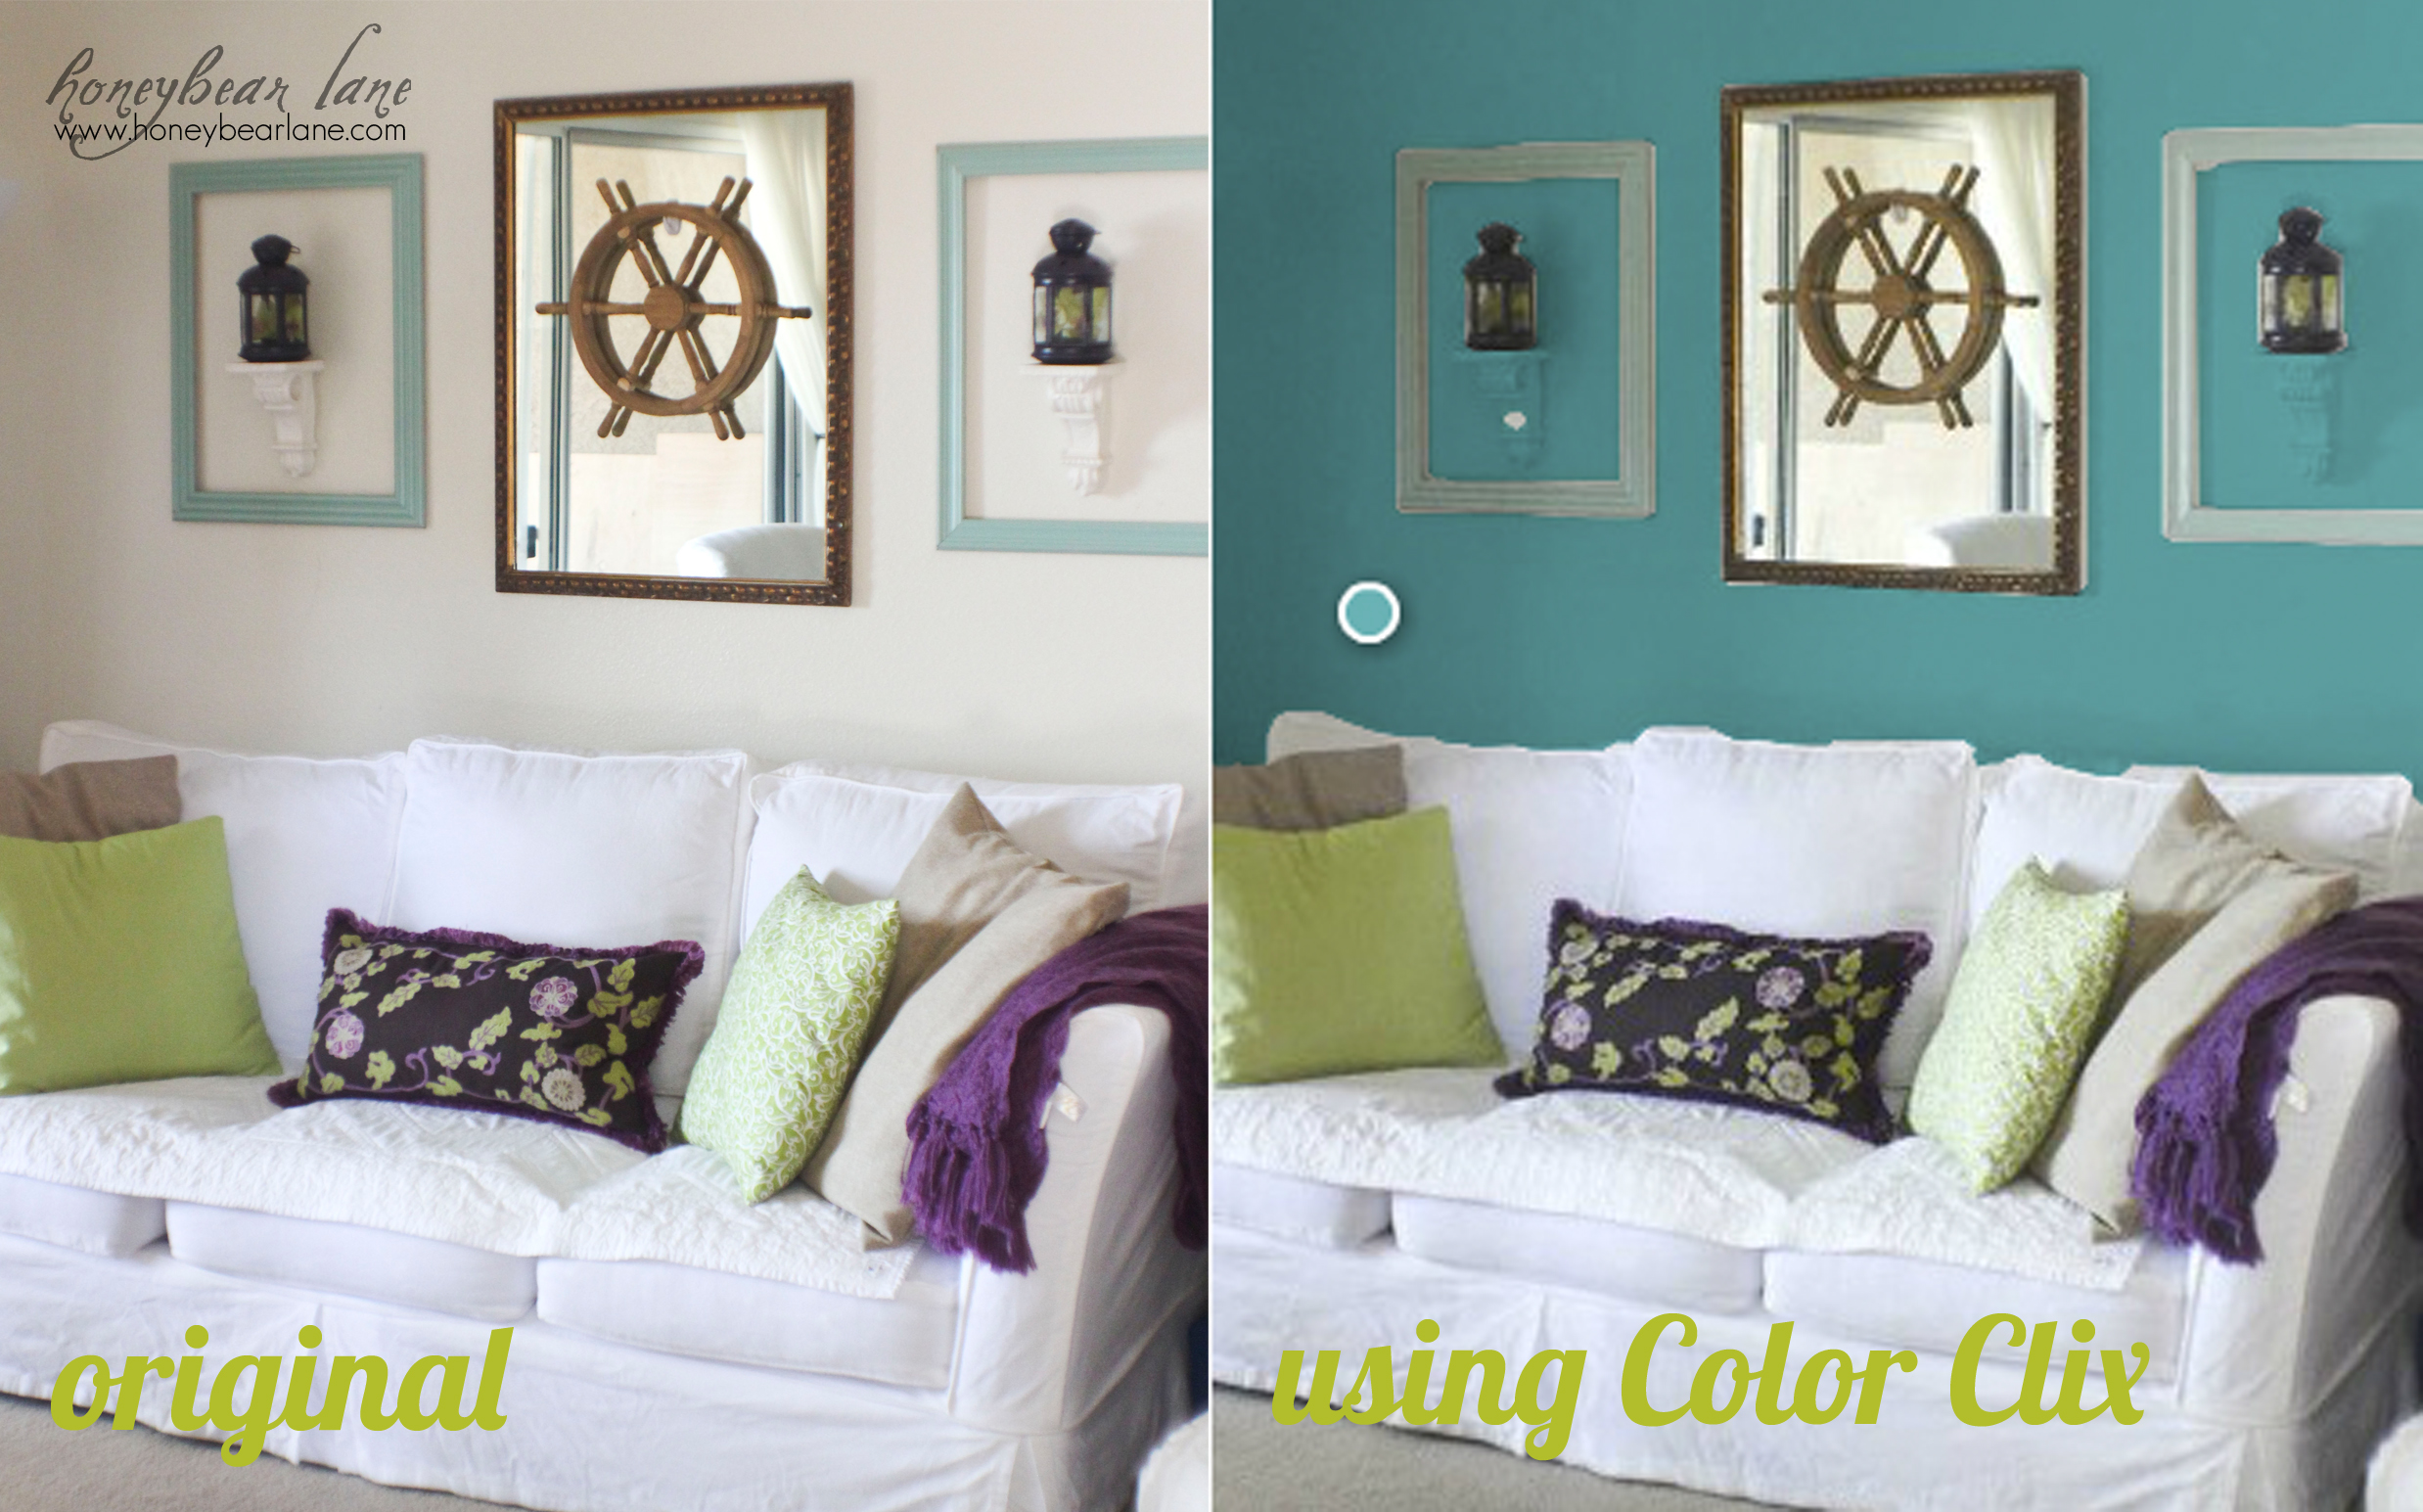 How to Virtually Re-Paint Your Room